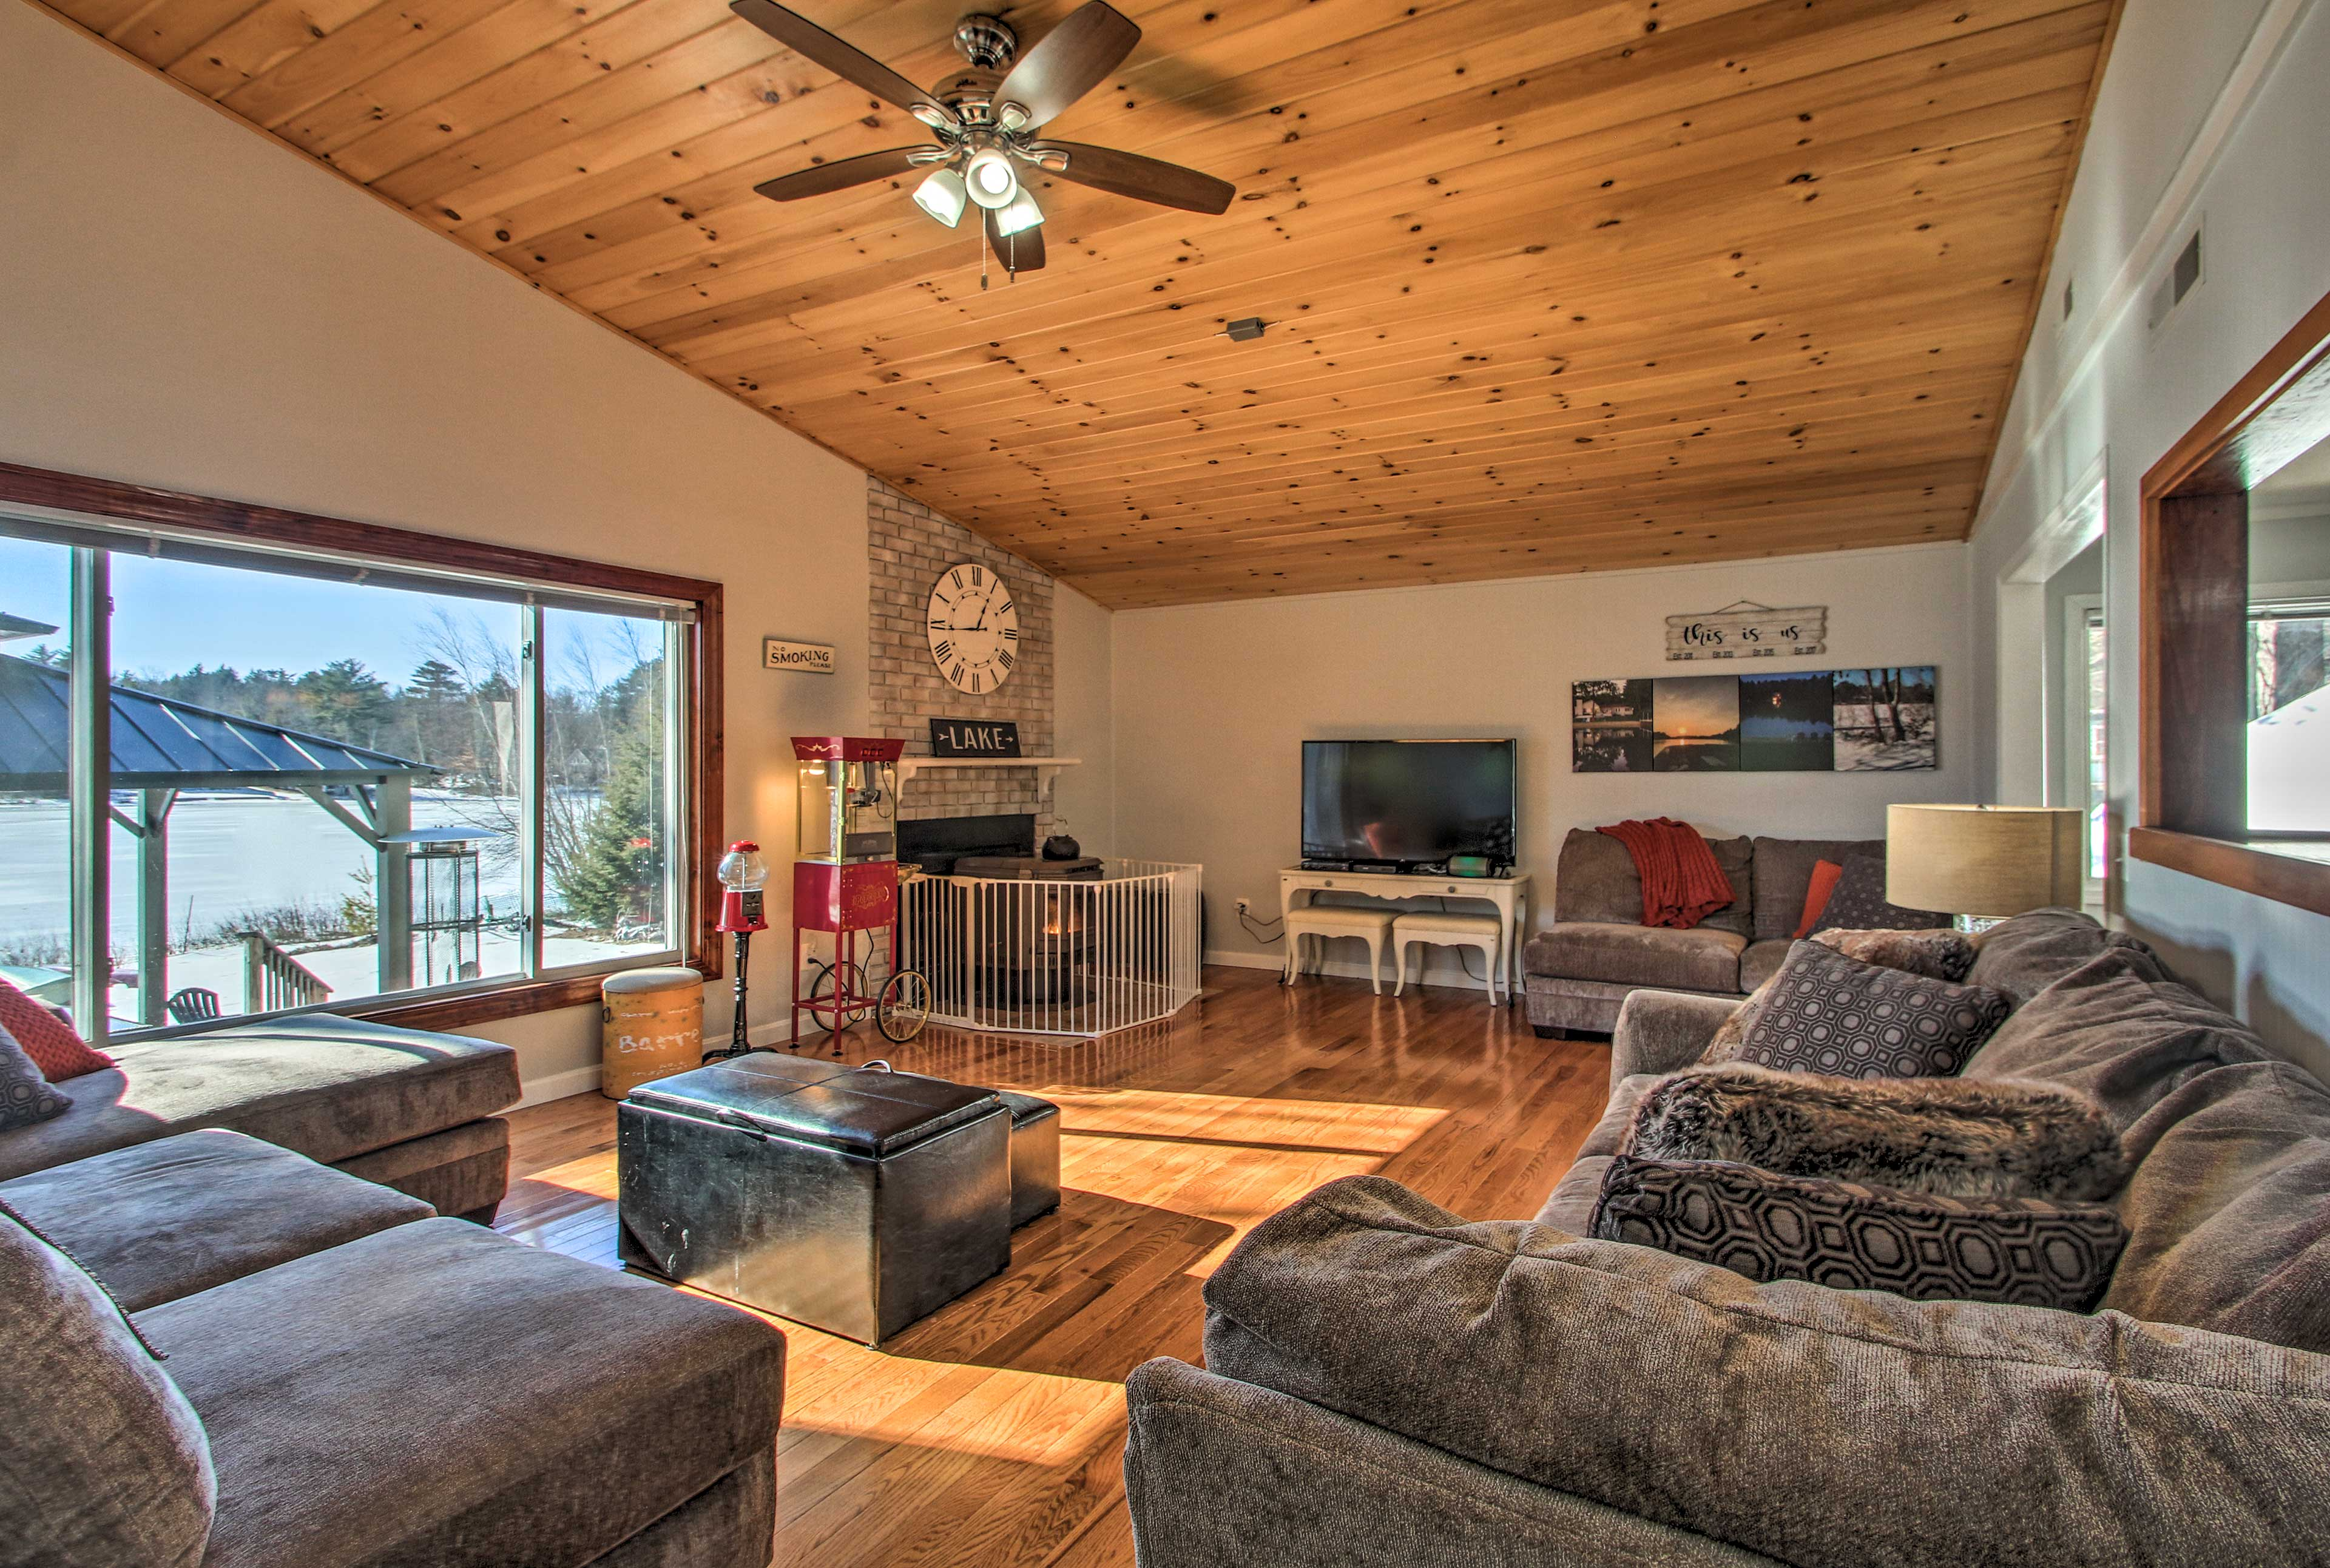 Relax on the cozy couches while enjoying the stunning lake view!